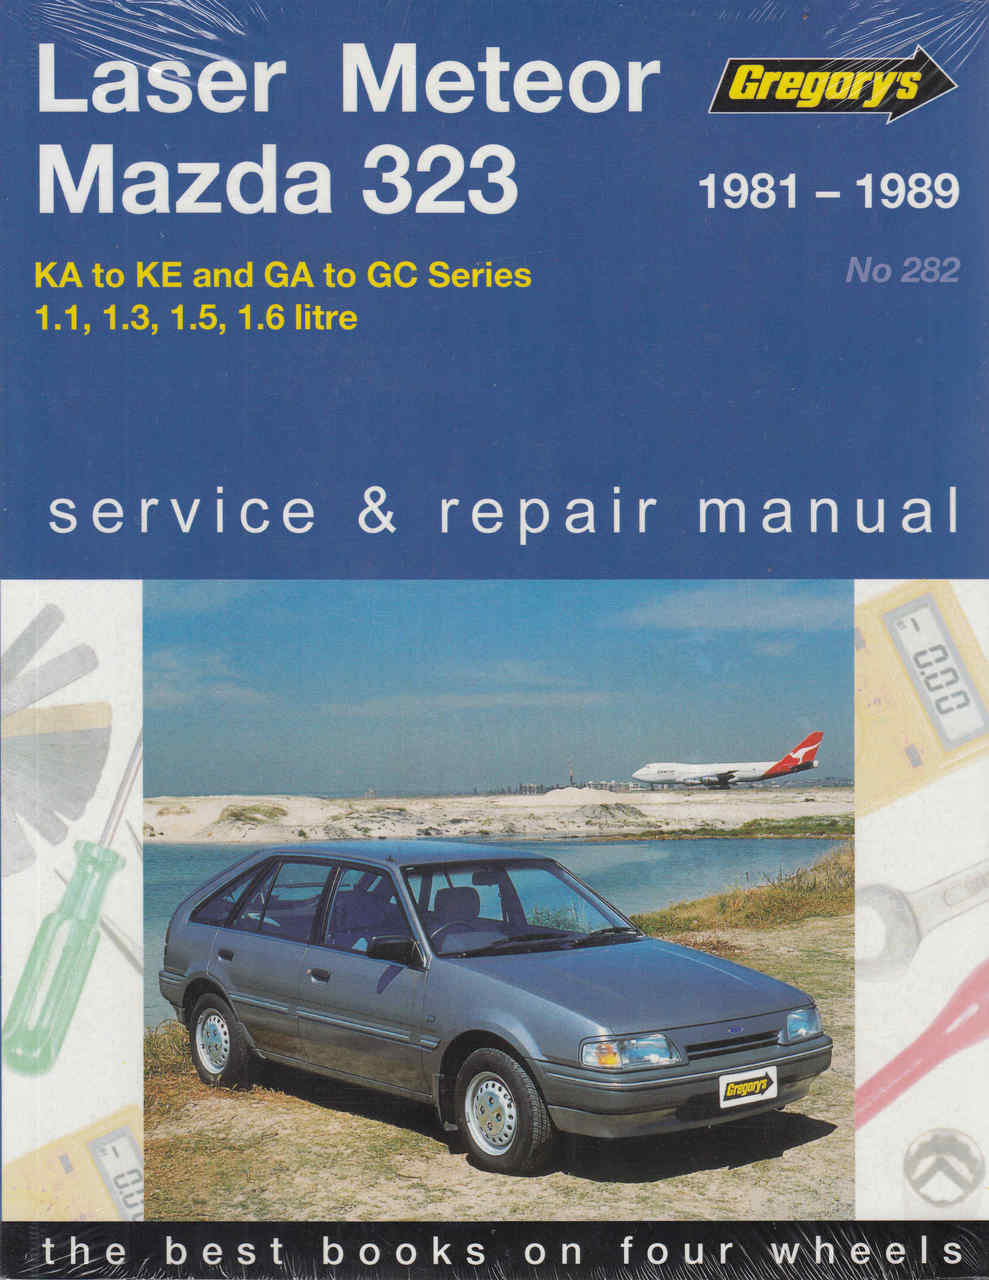 ford laser ford meteor amp mazda 323 1985 1989 workshop manual rh automotobookshop com au 1989 mazda 323 owner's manual 1988 mazda 323 service manual